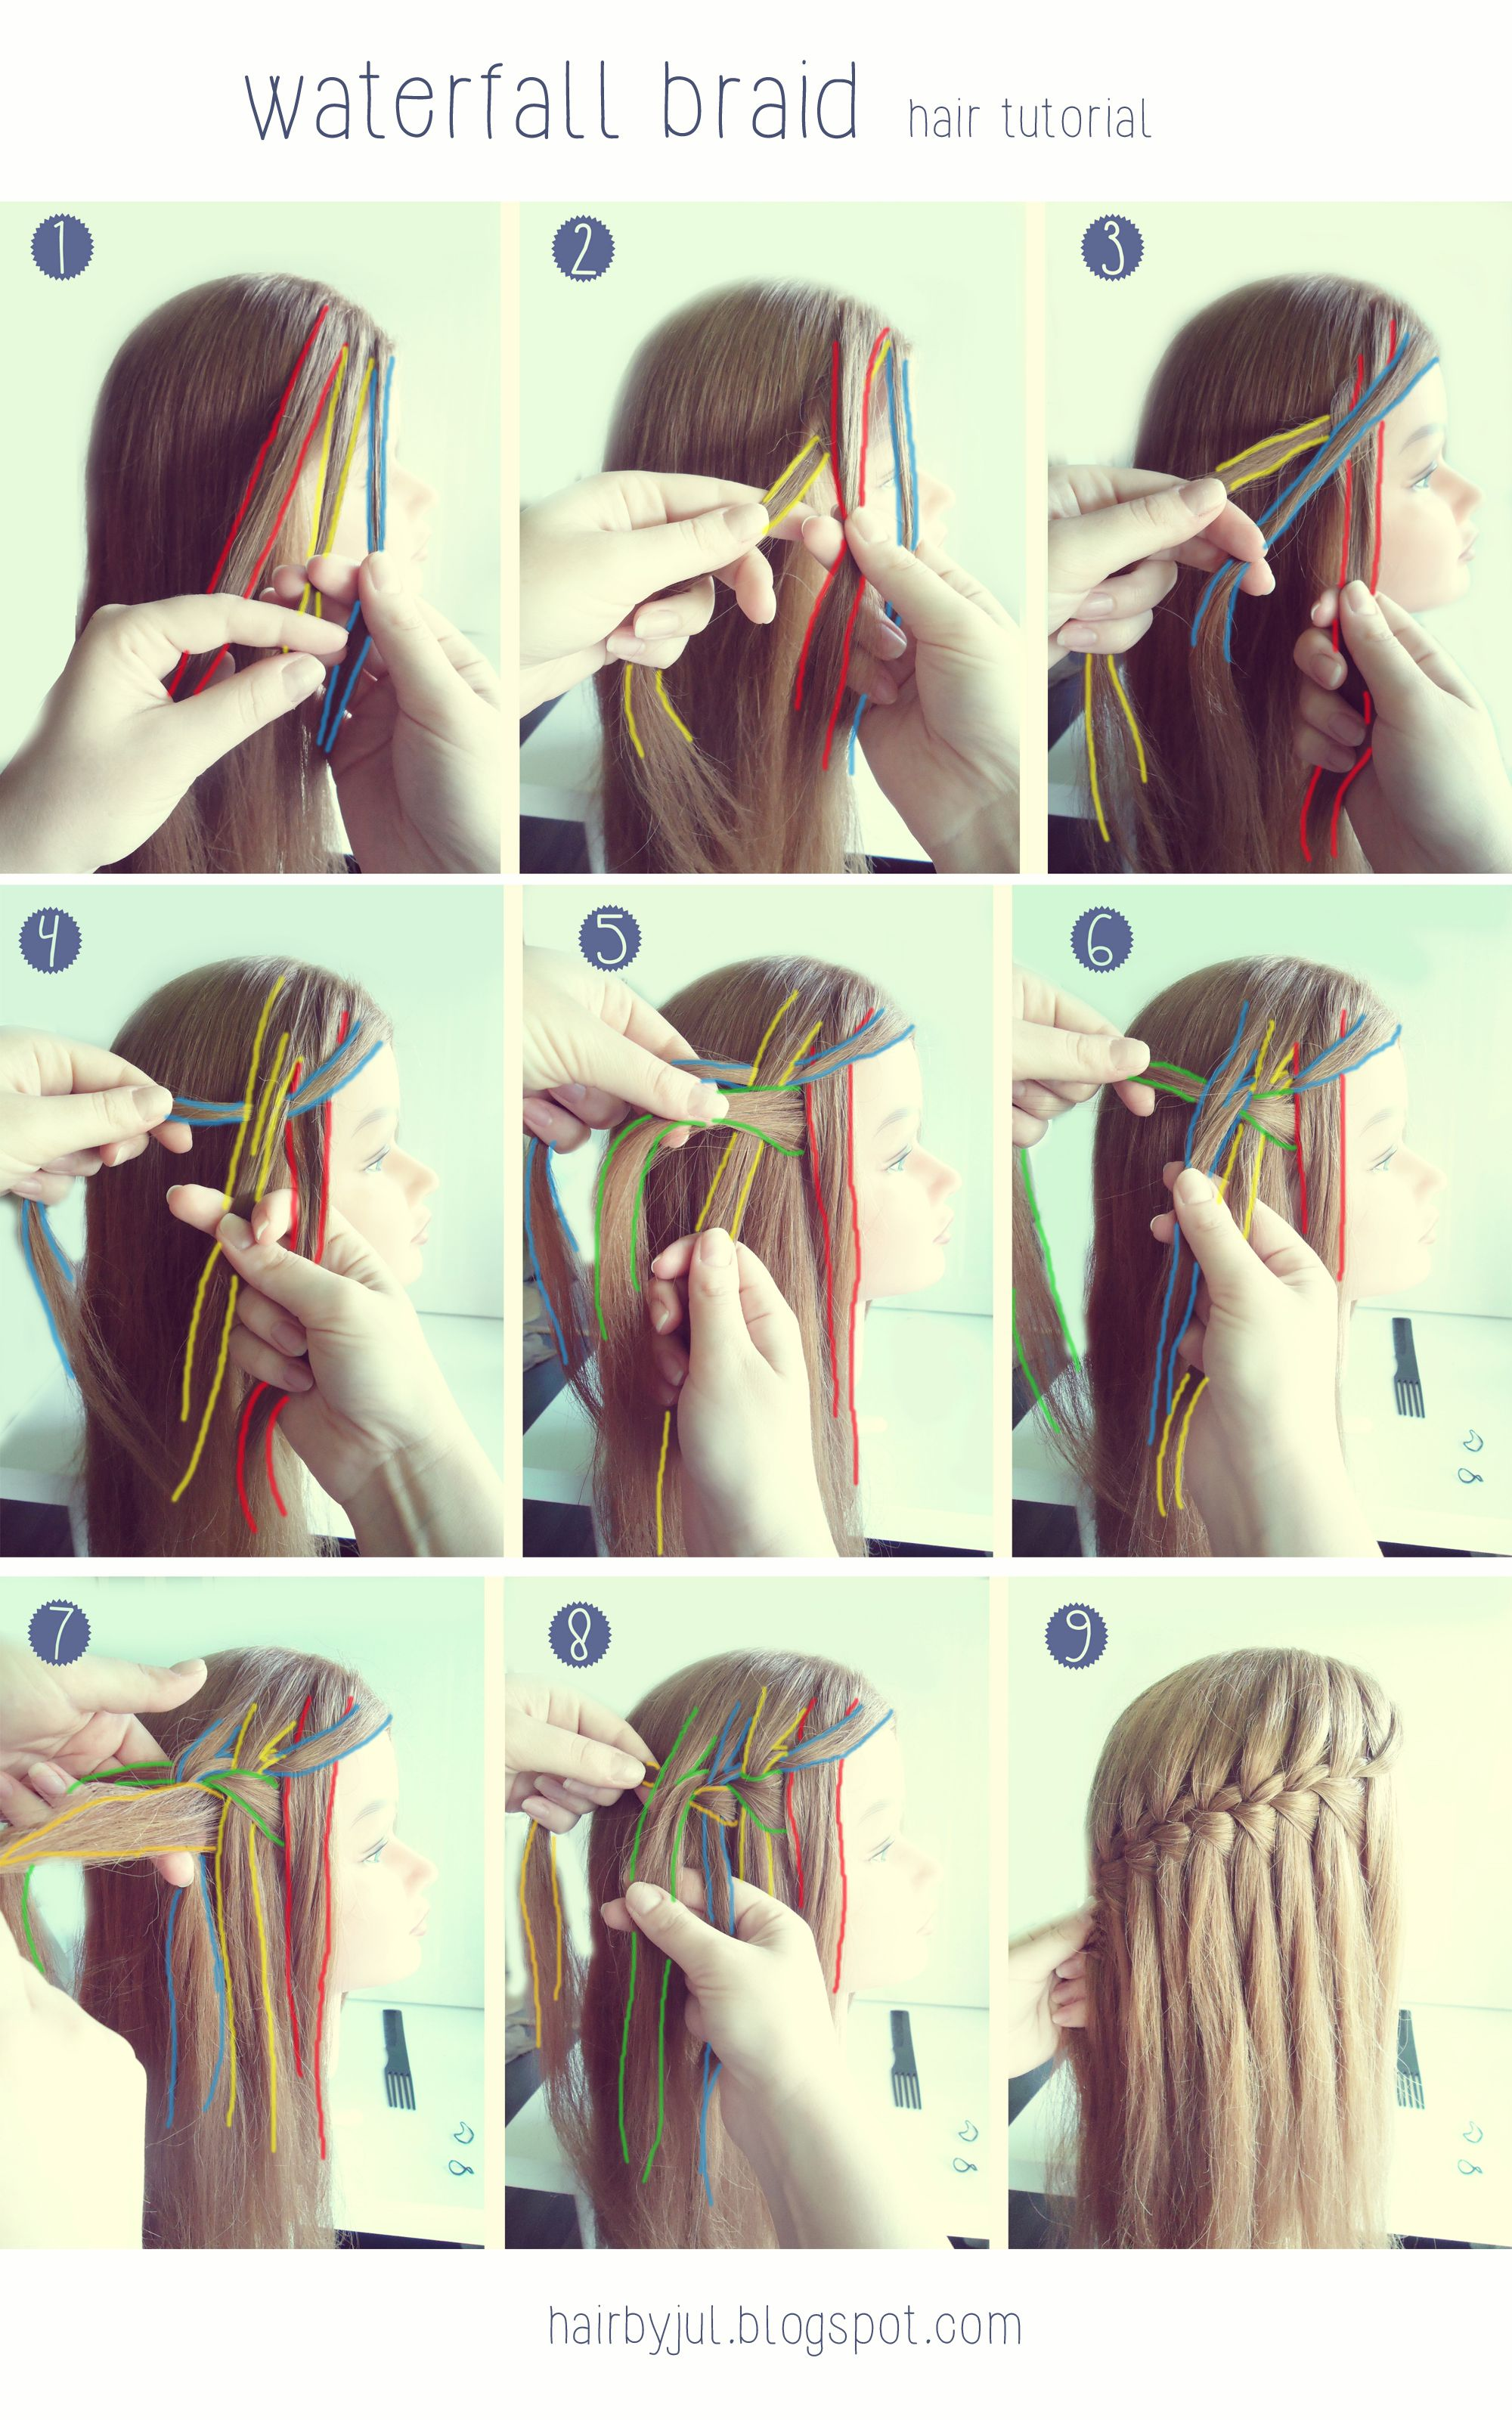 waterfall braid hair tutorial #waterfall #braid #tutorial | Hair ...